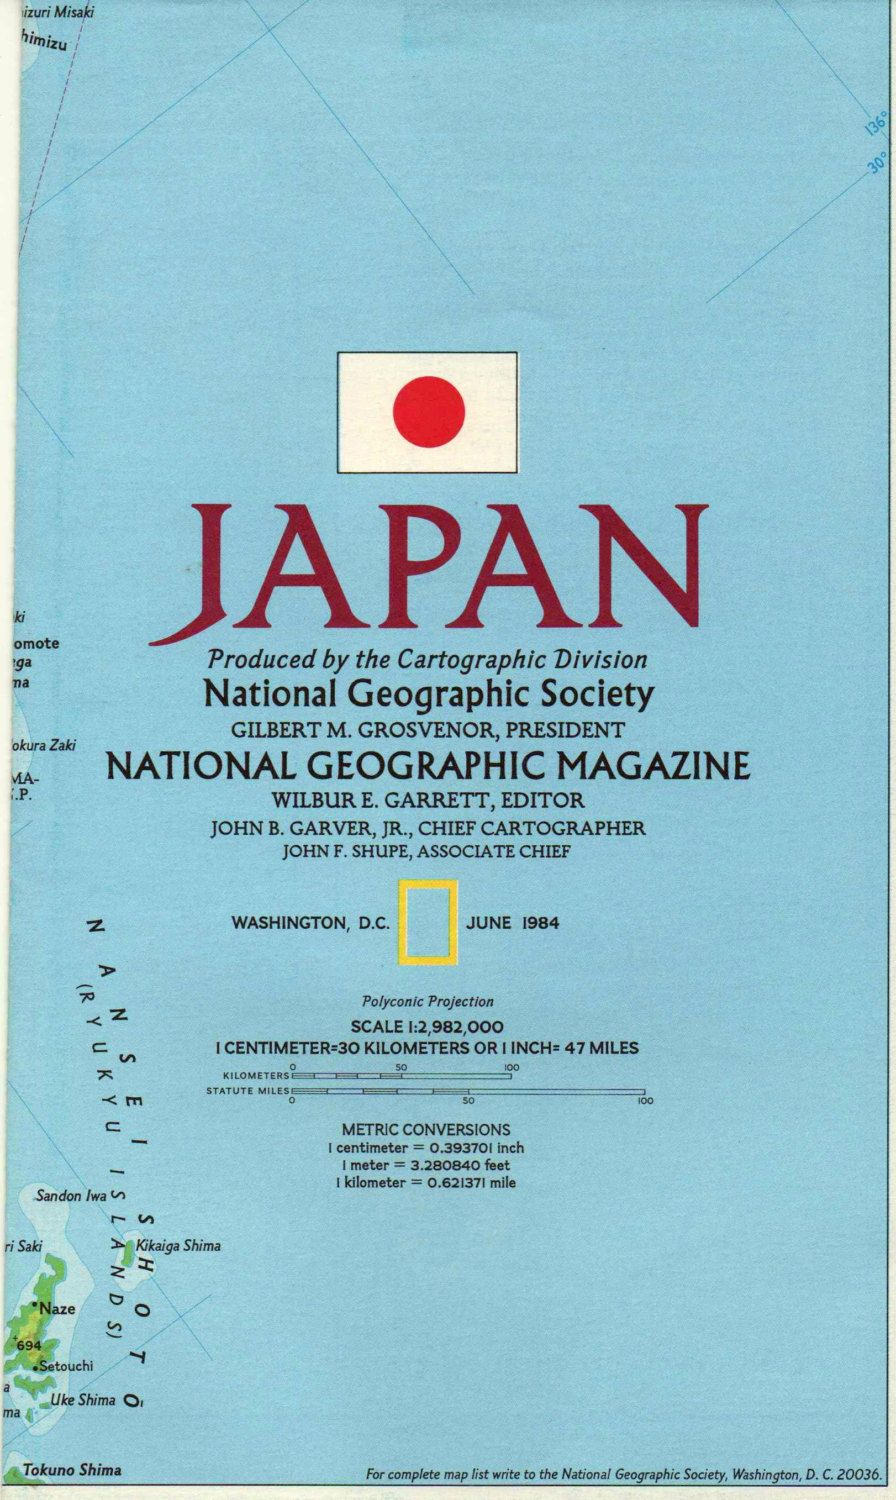 Japan National Geographic Map and History Timeline Poster